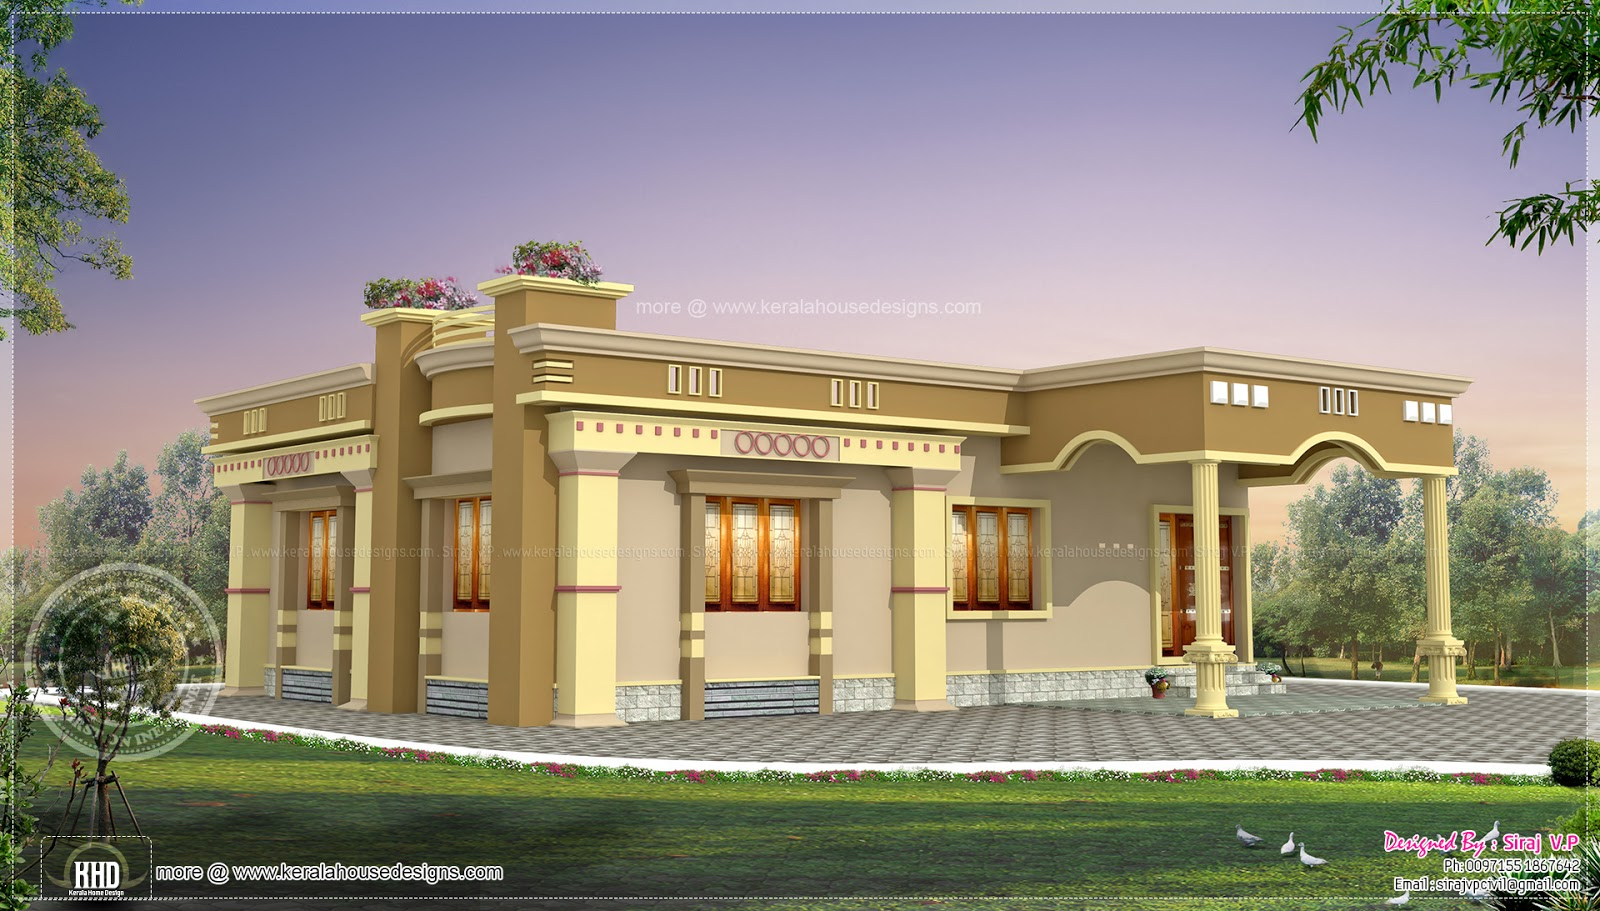 Tamilnadu small house front elevation design joy studio for Tamilnadu house designs photos